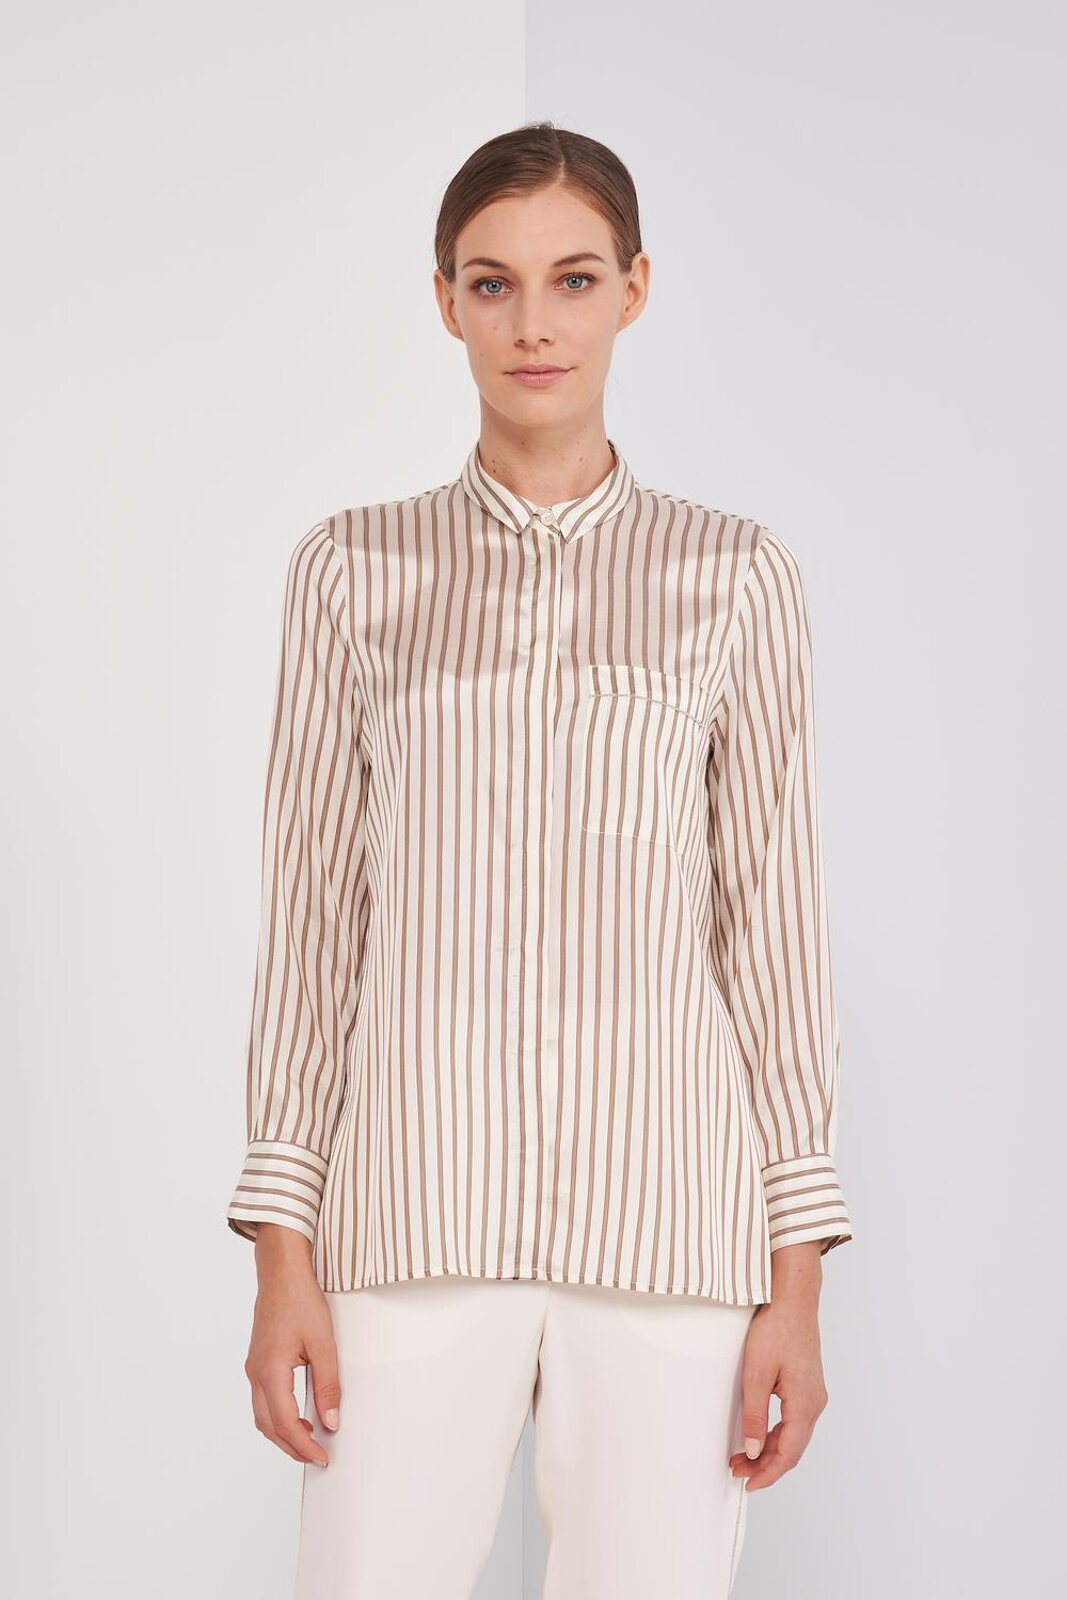 Long Sleeve Shirt In Fluid Silk And Viscose. Small collar, striped pattern, chest pocket with metal light point details, front button closure. Regular fit. - Peserico